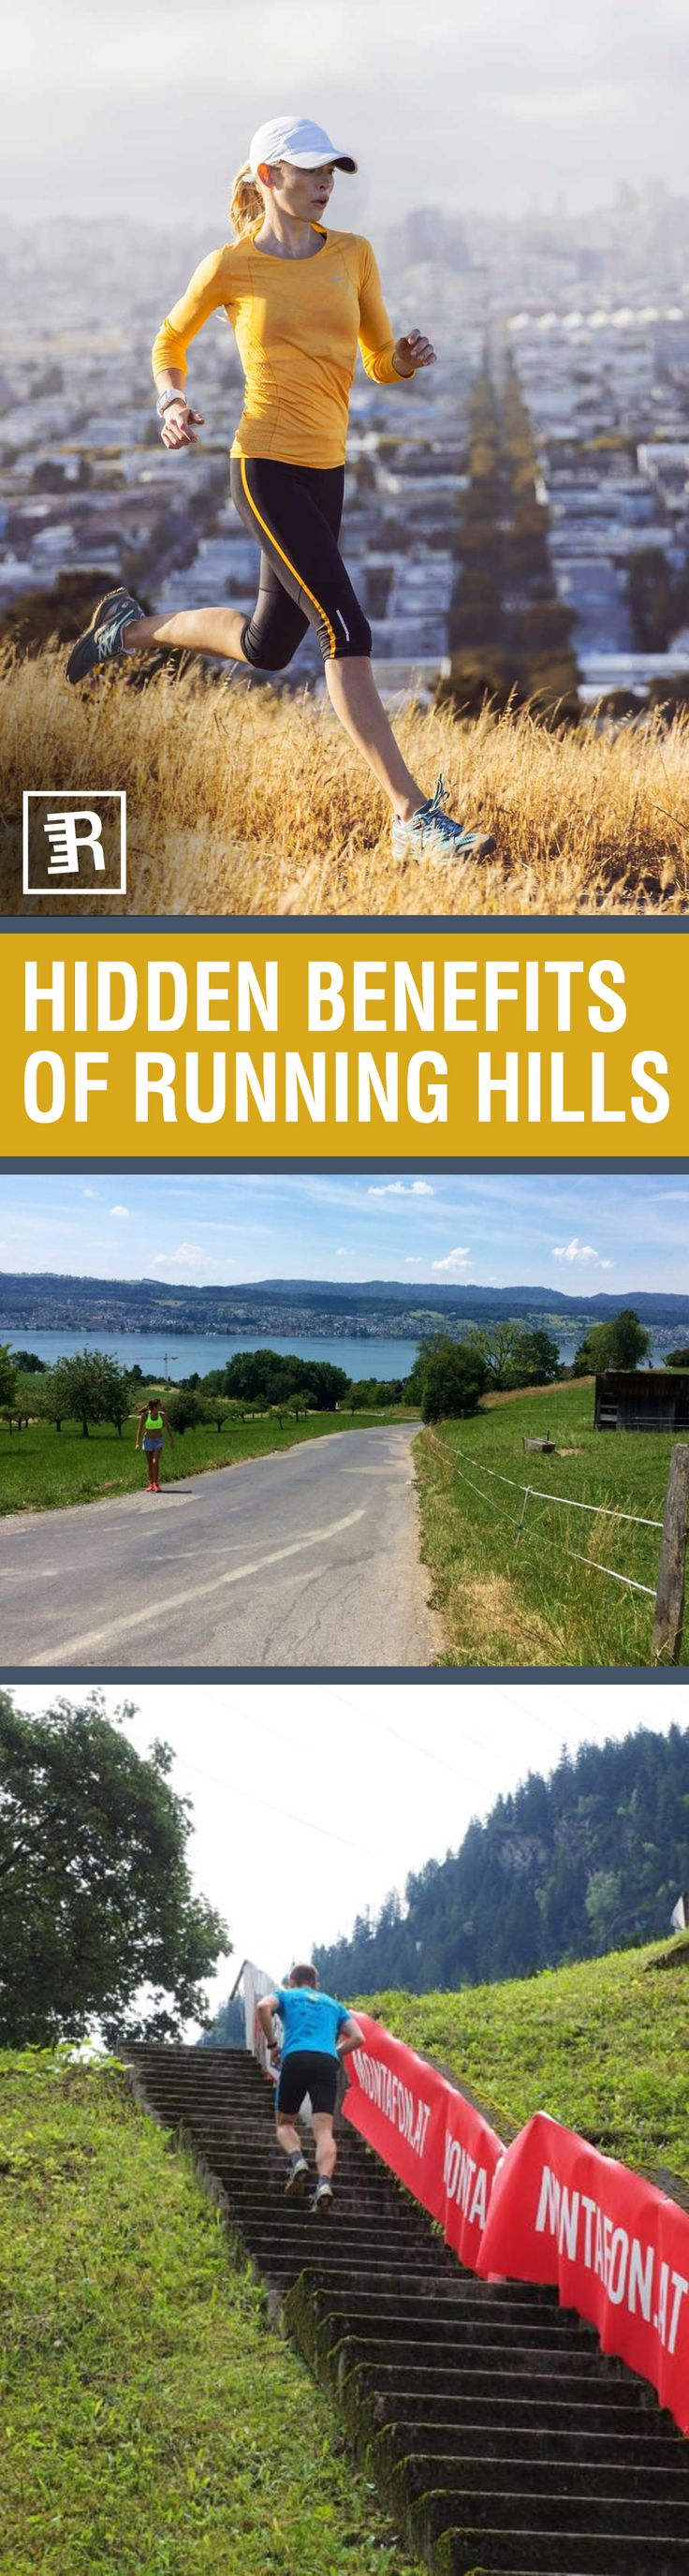 Hills are a challenge for most runners, yet there is a secret that each hill holds. Dare yourself to achieve the impossible, and learn the hidden benefits of running hills.